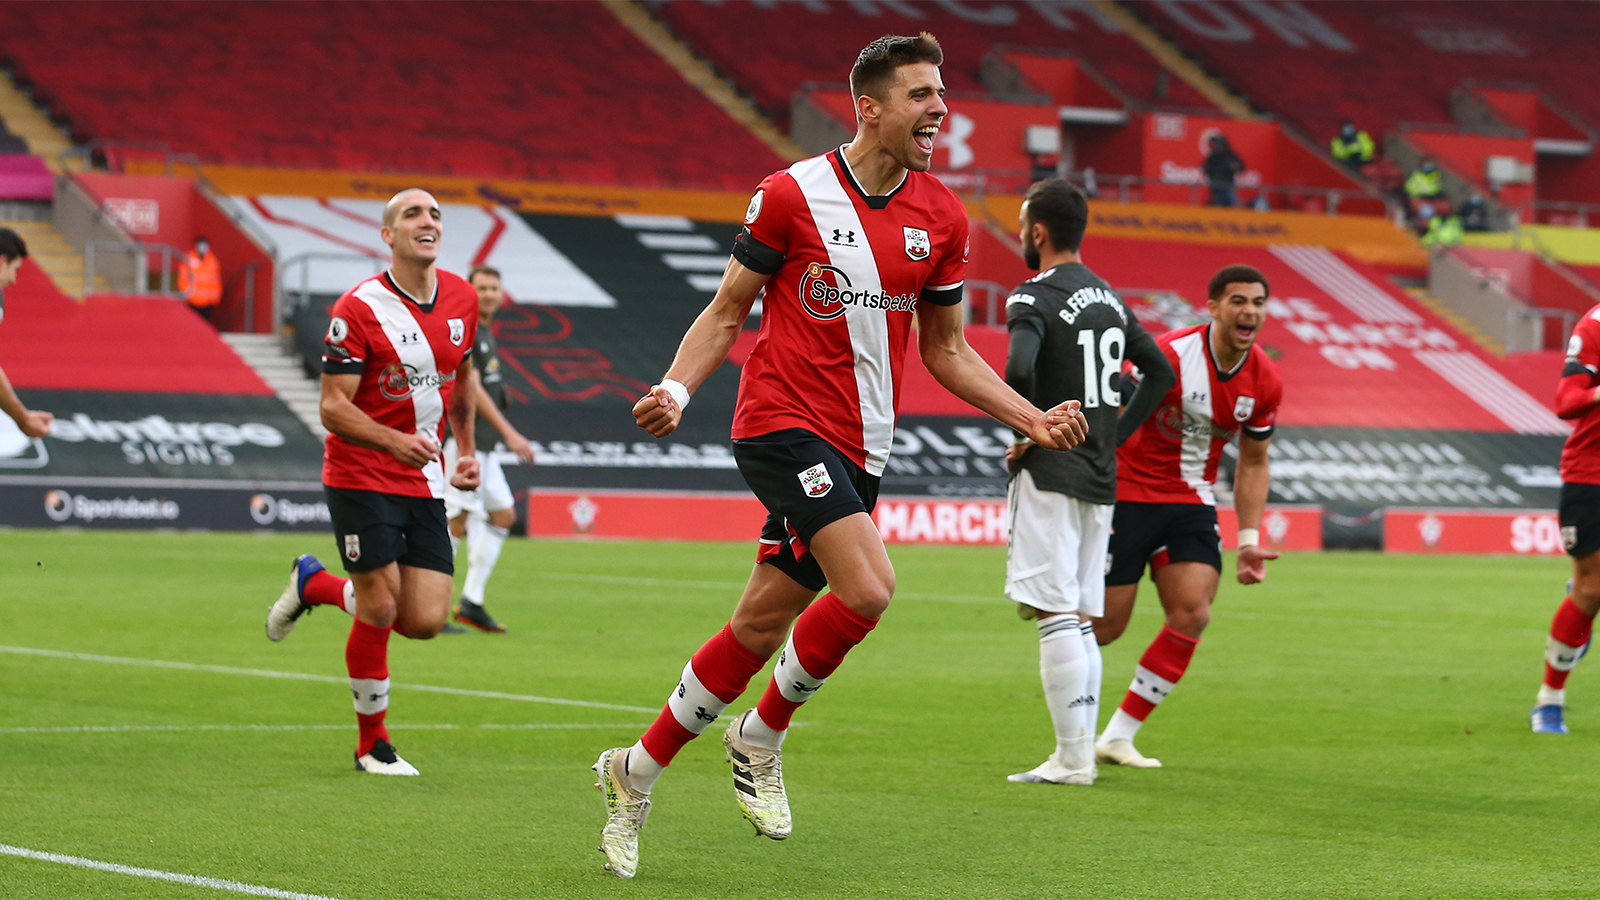 Jan Bednarek runs away celebrating after scoring.